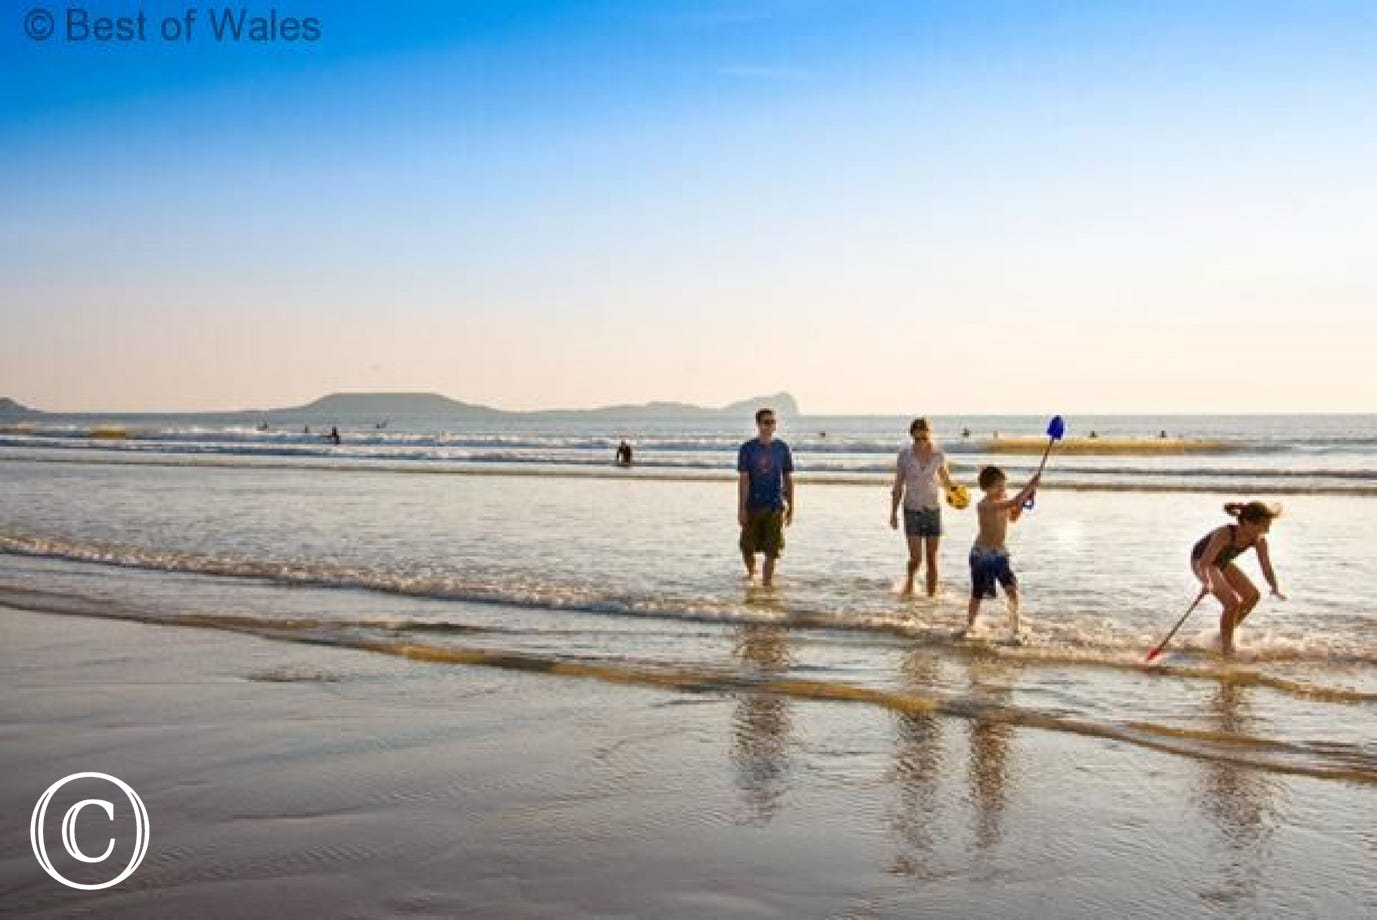 Great family beaches in Gower